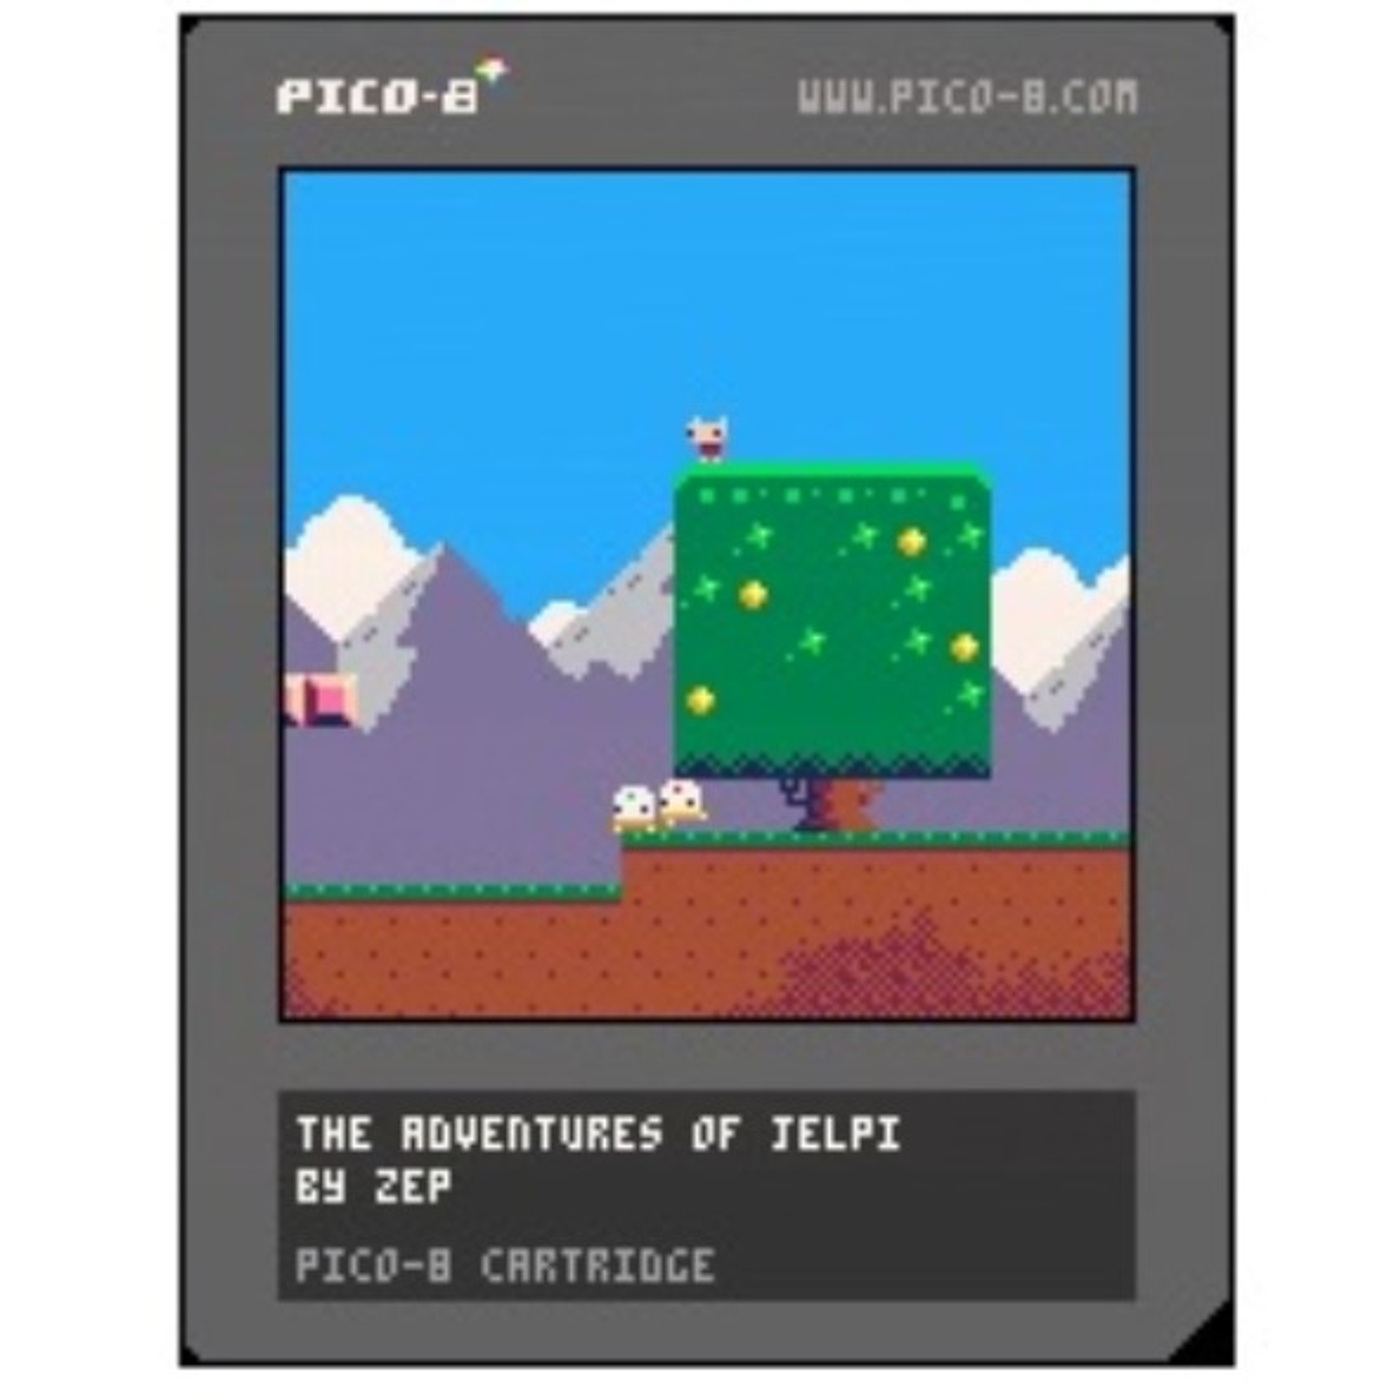 Tiny games with the PICO-8 Fantasy Console and Joseph White